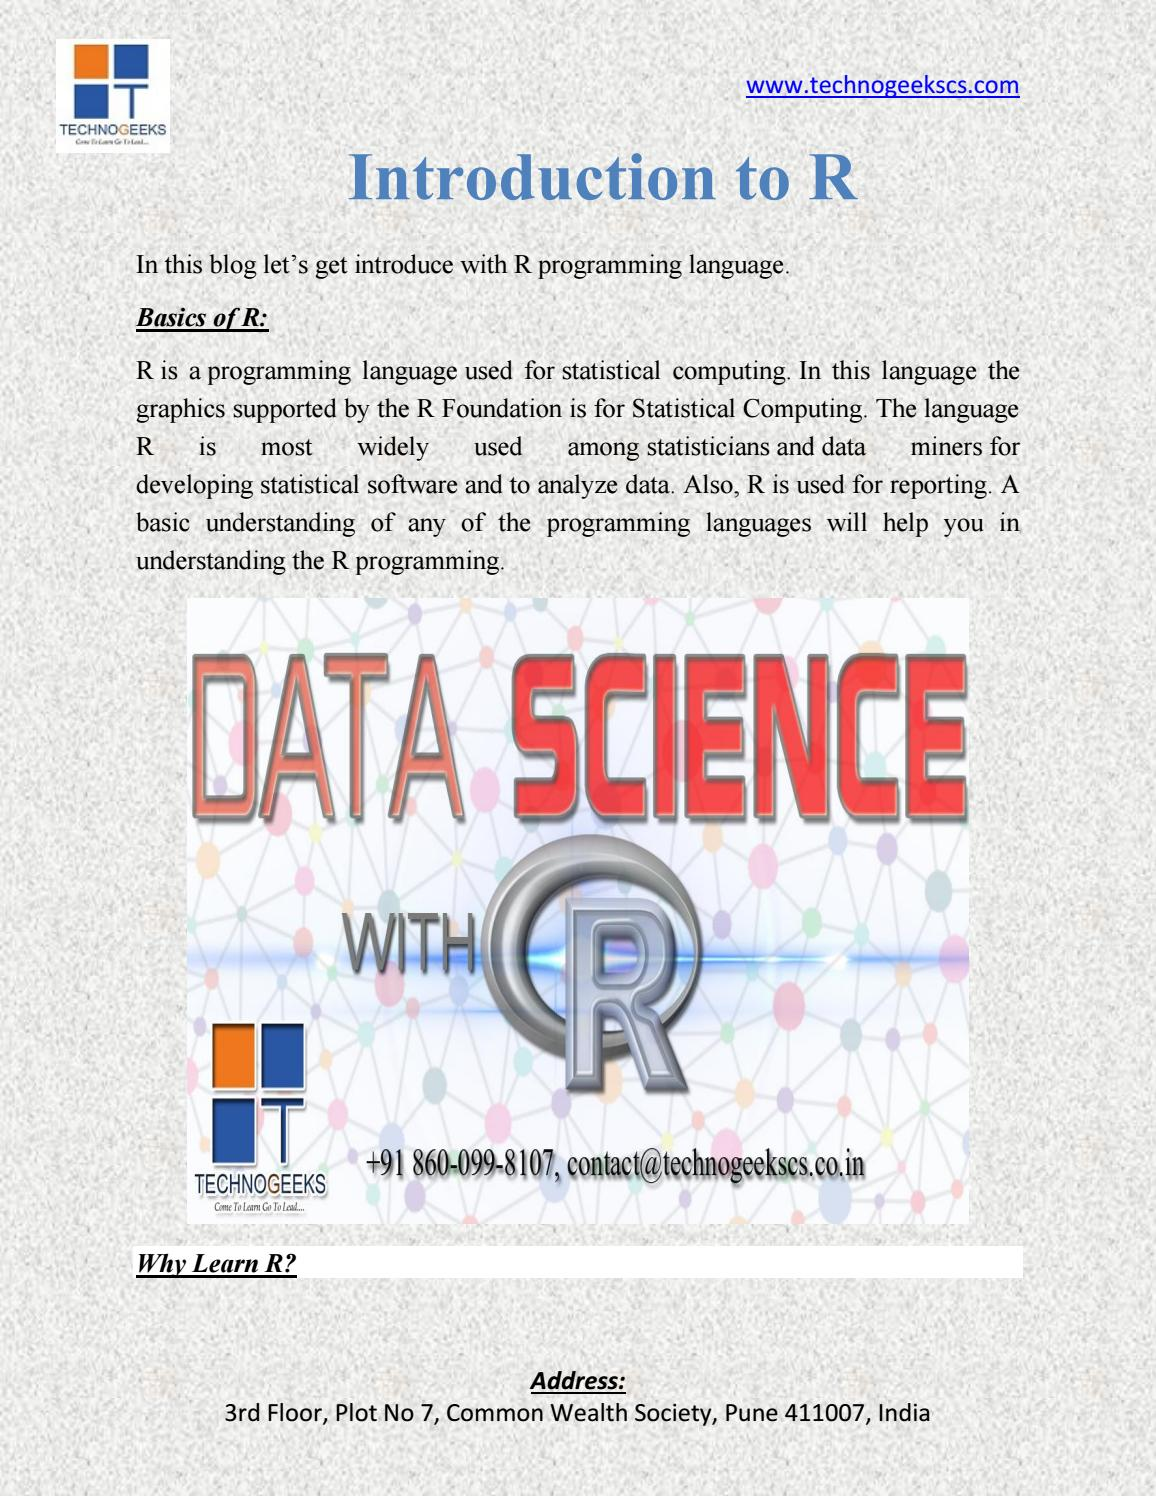 Introduction to R by technogeeks - issuu